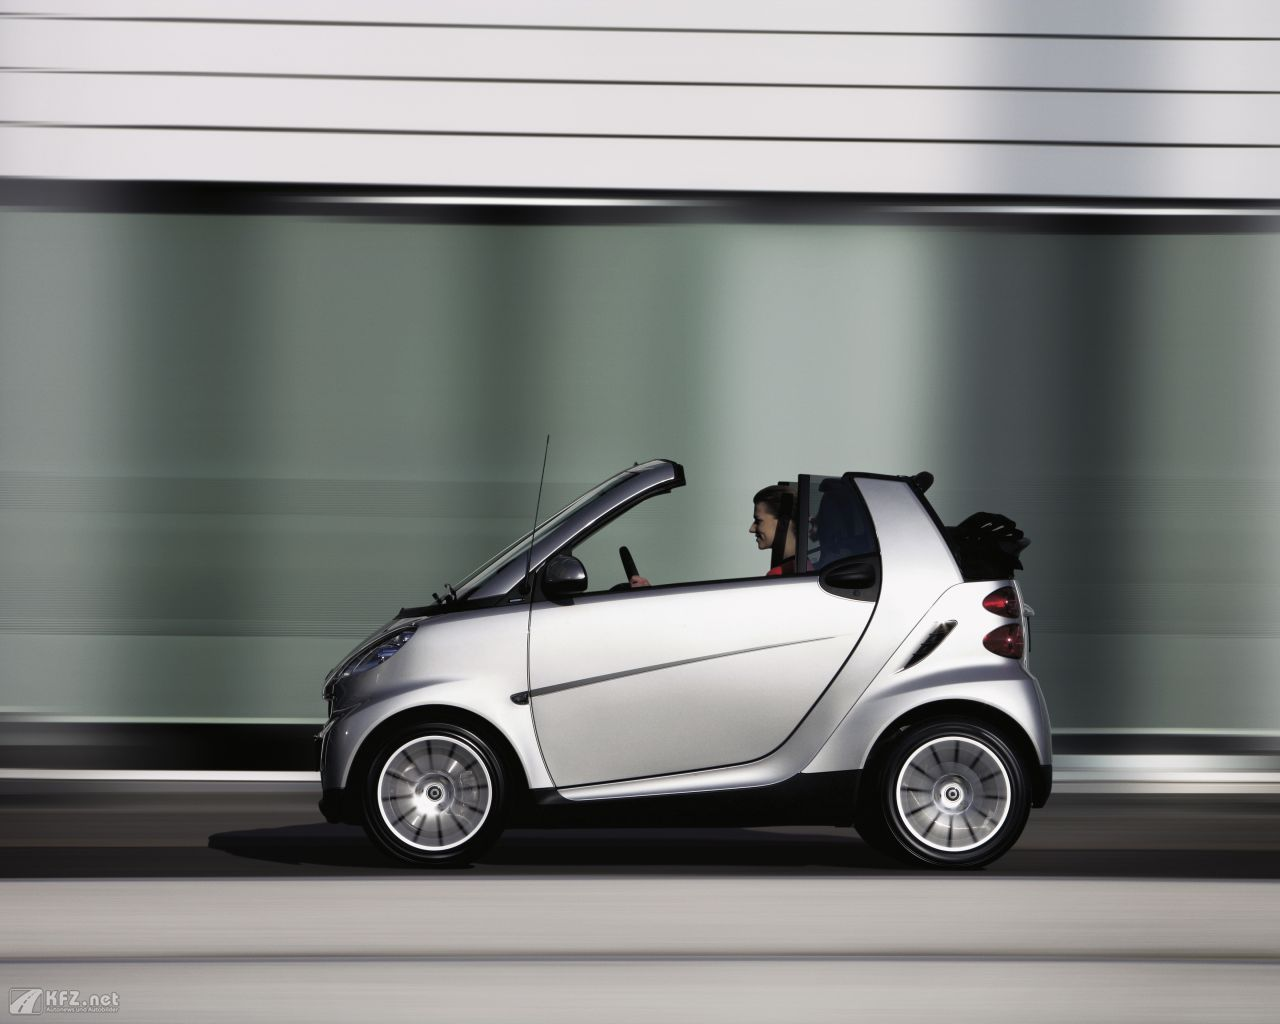 smart-fortwo-1280x1024-10